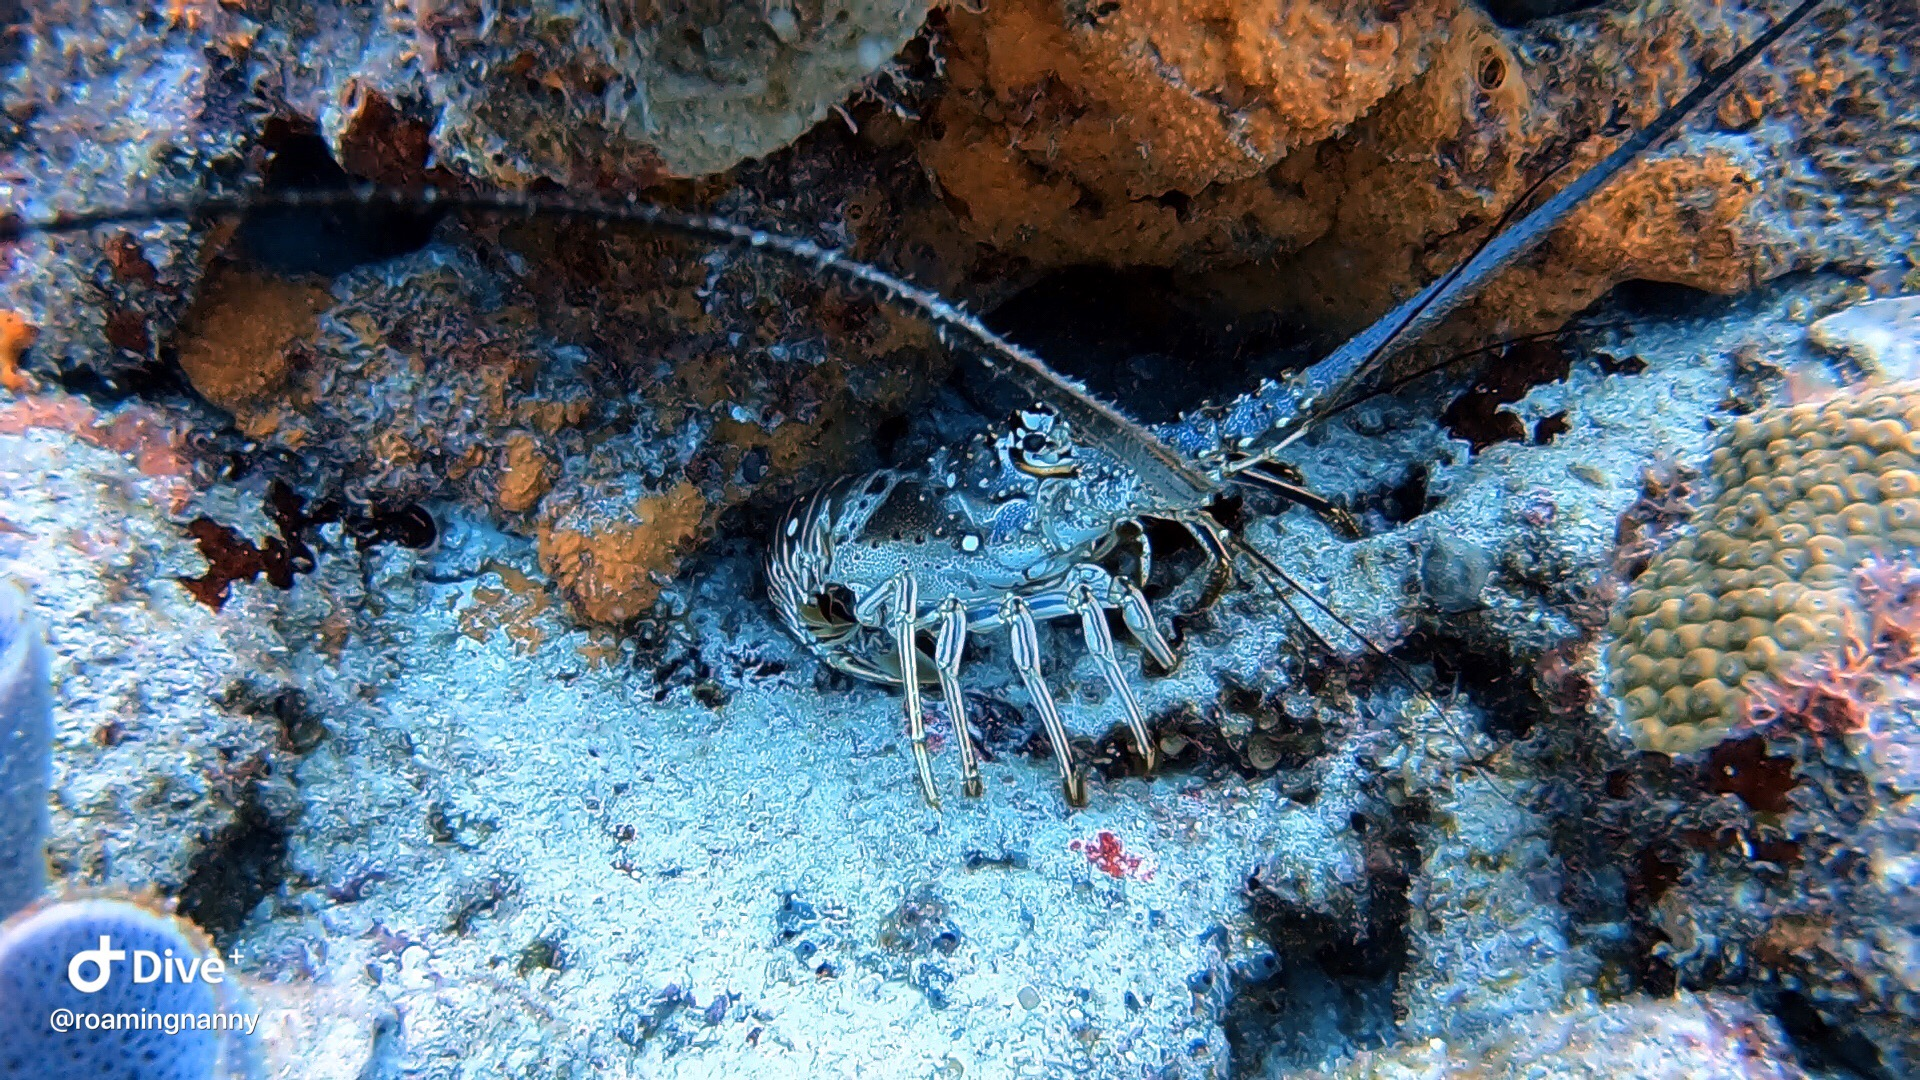 Lobster seen while scuba diving in Cozumel